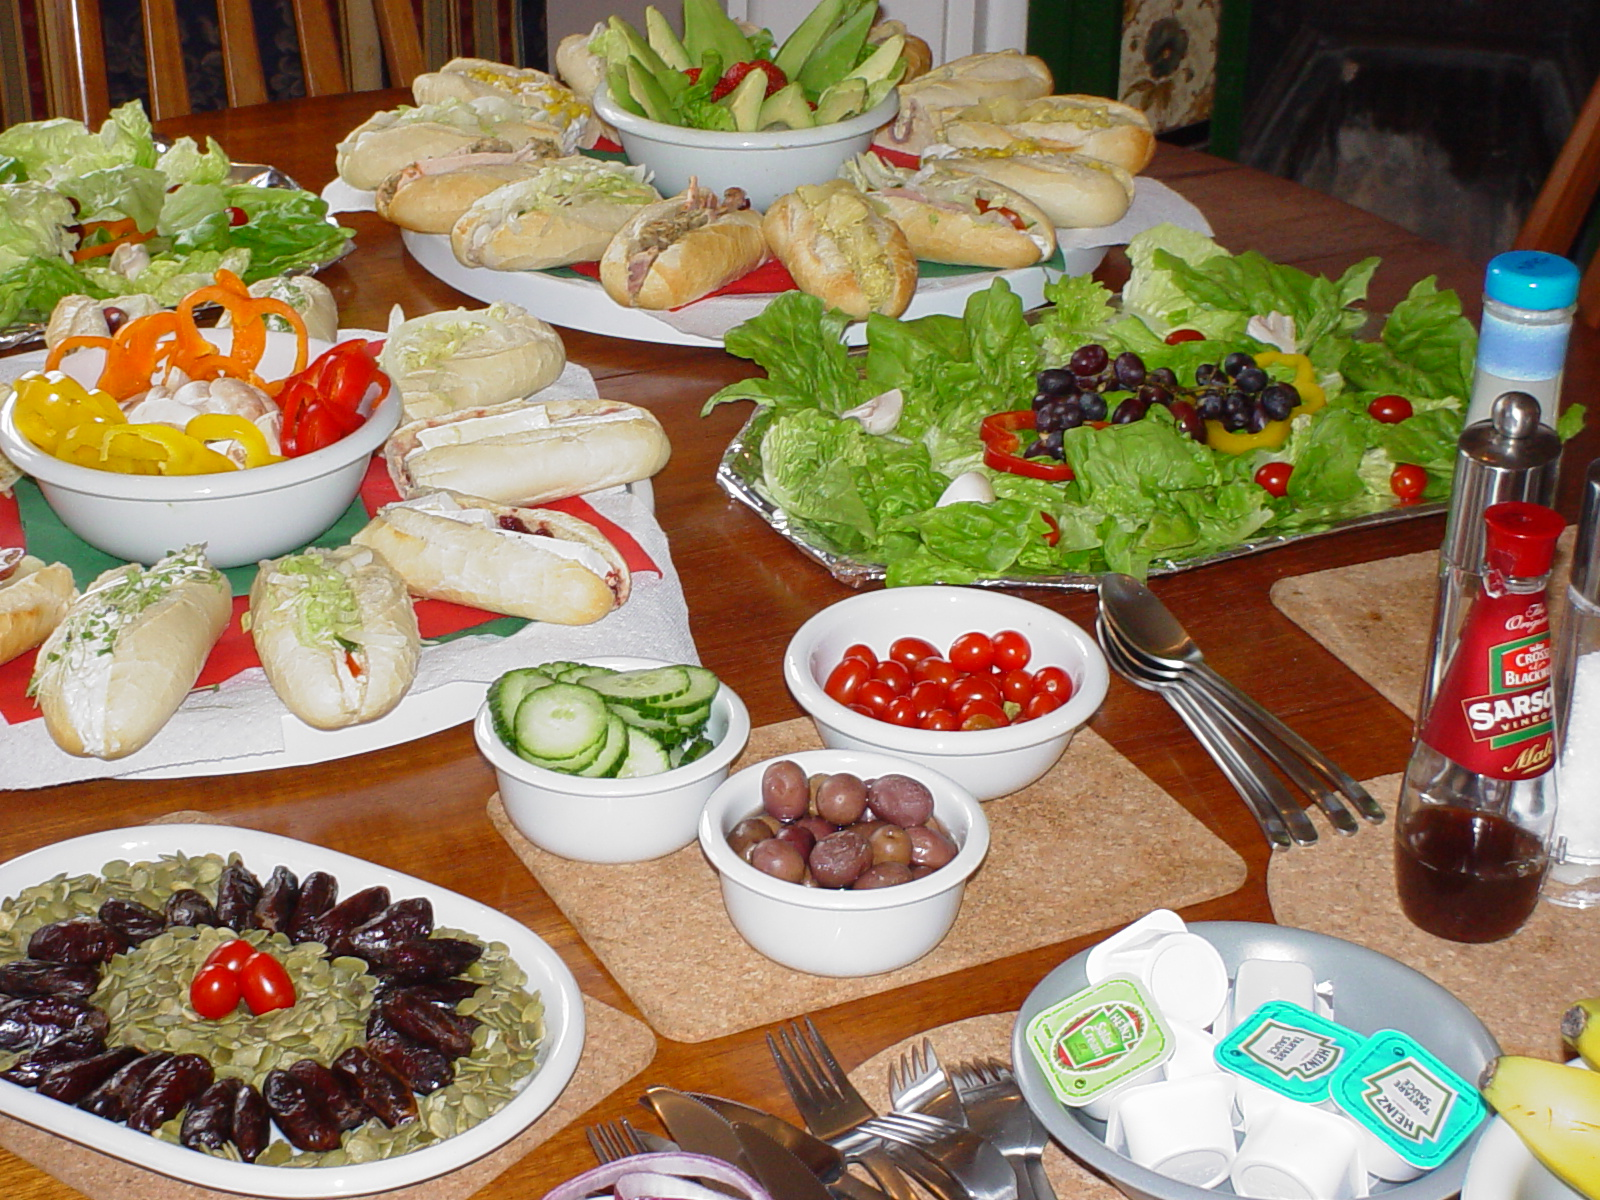 http://www.wellho.net/slideshow/buffet-lunch.jpg